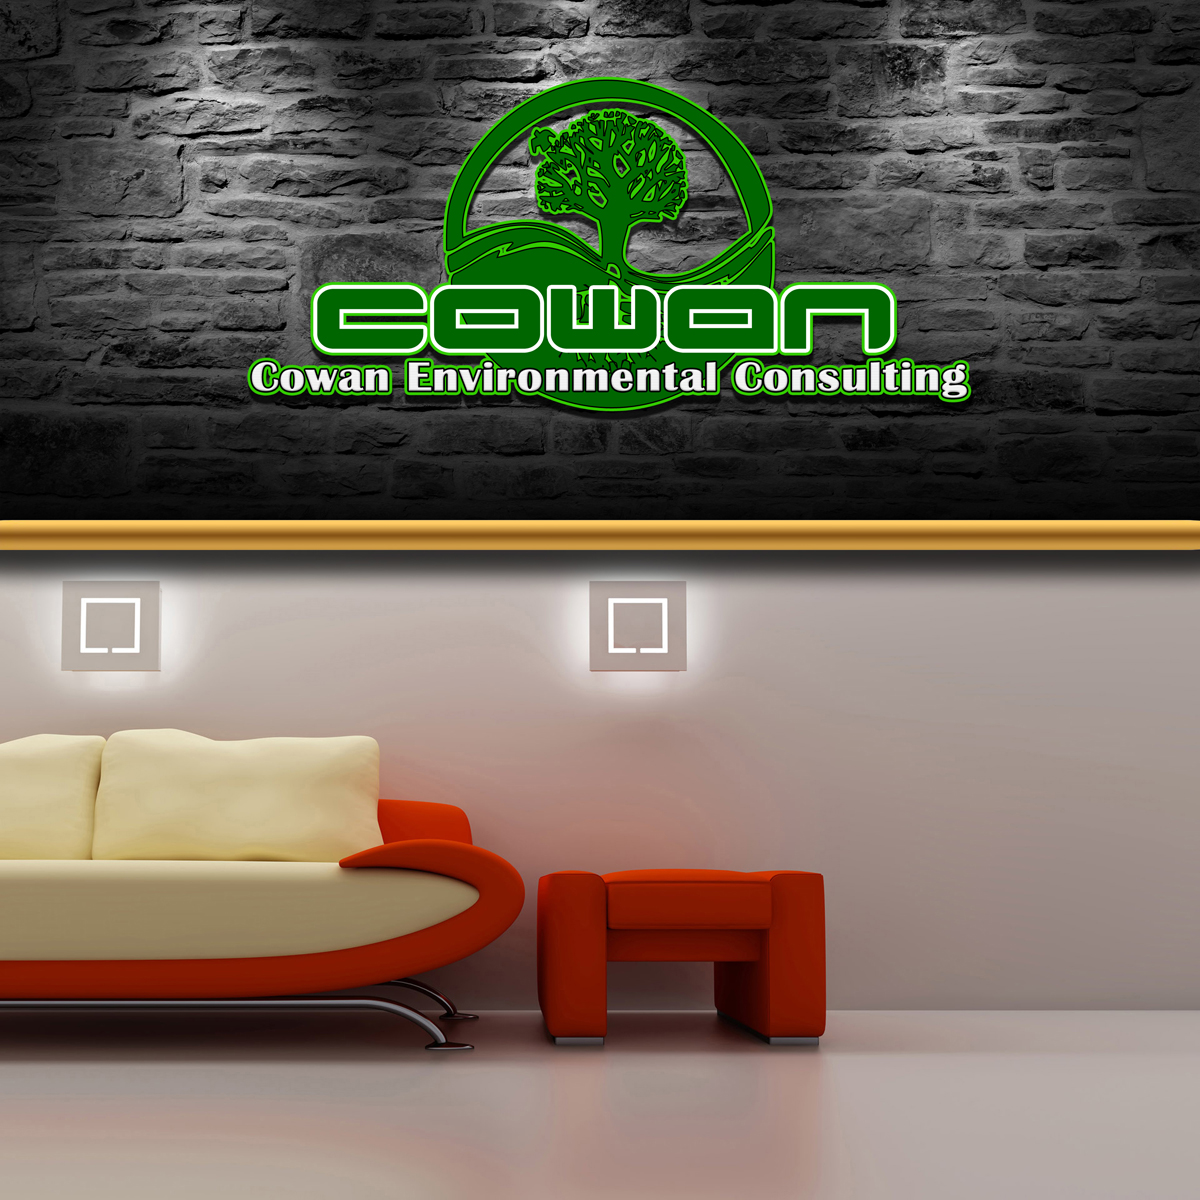 Logo Design by MITUCA ANDREI - Entry No. 34 in the Logo Design Contest Fun Logo Design for Cowan Environmental Consulting.